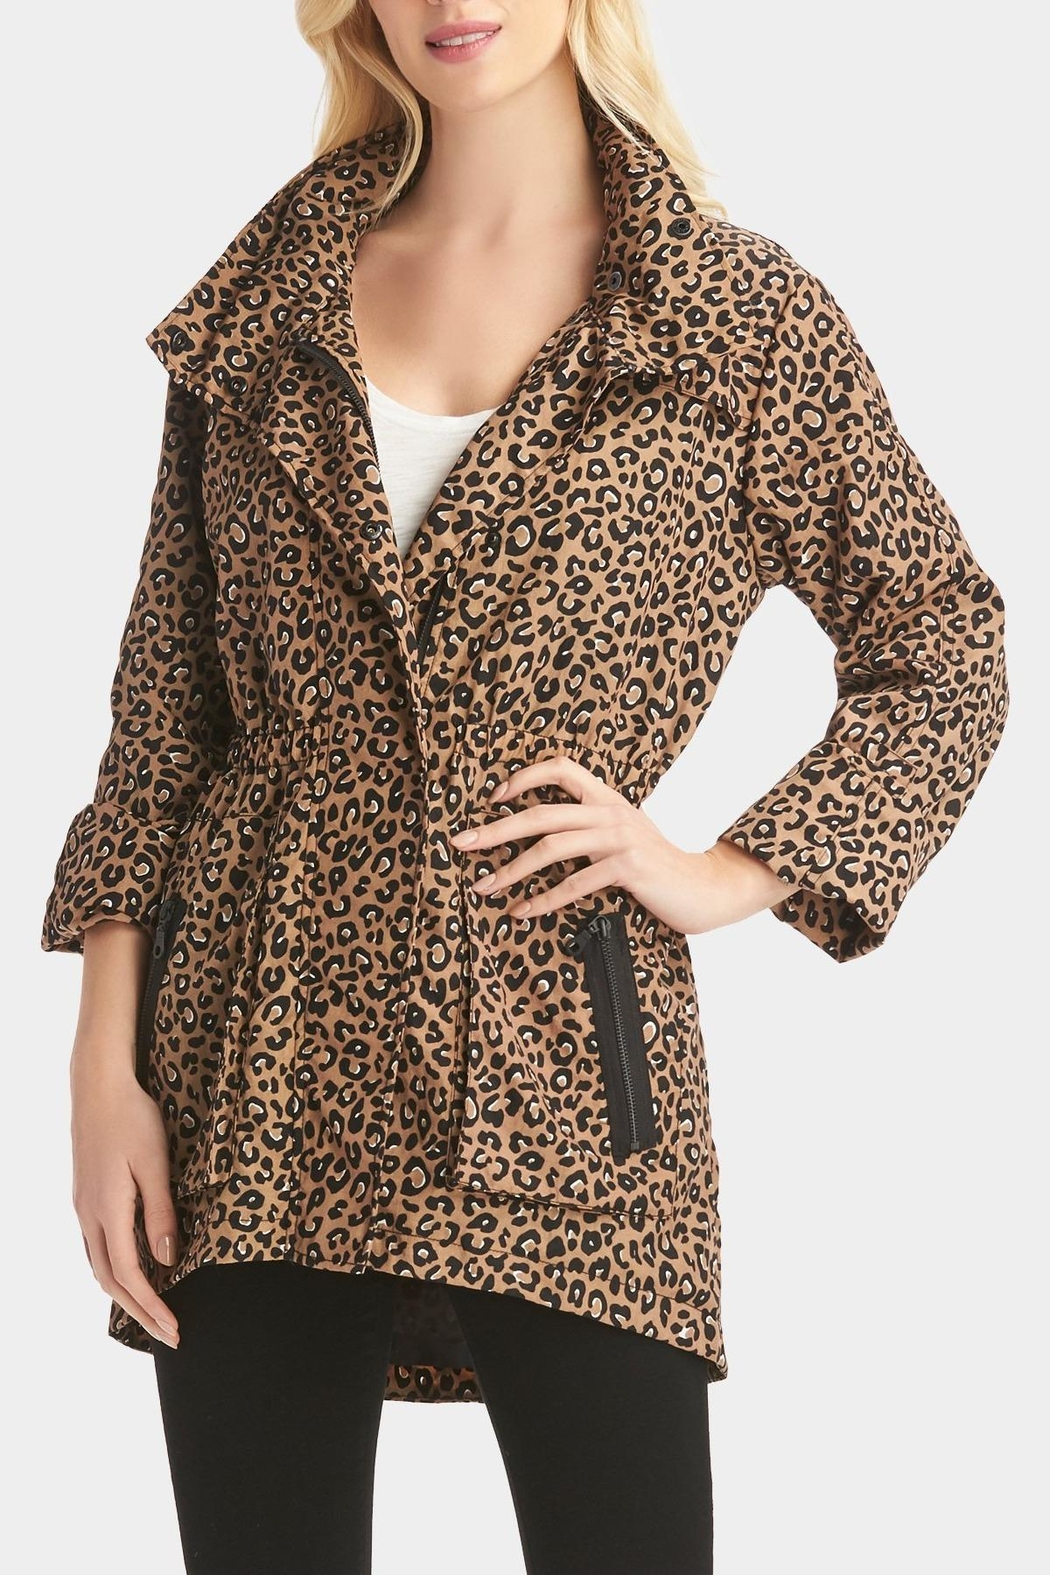 Tart Collections Leopard Printed Anorak - Main Image